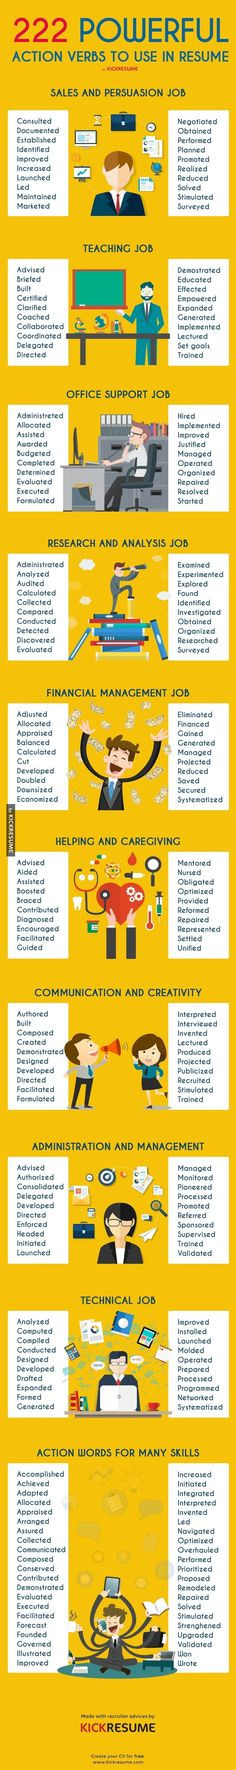 200+ Powerful Action Verbs Perfect for Your Resume [Infographic] - The Savvy Intern by YouTern | @scoopit http://sco.lt/...